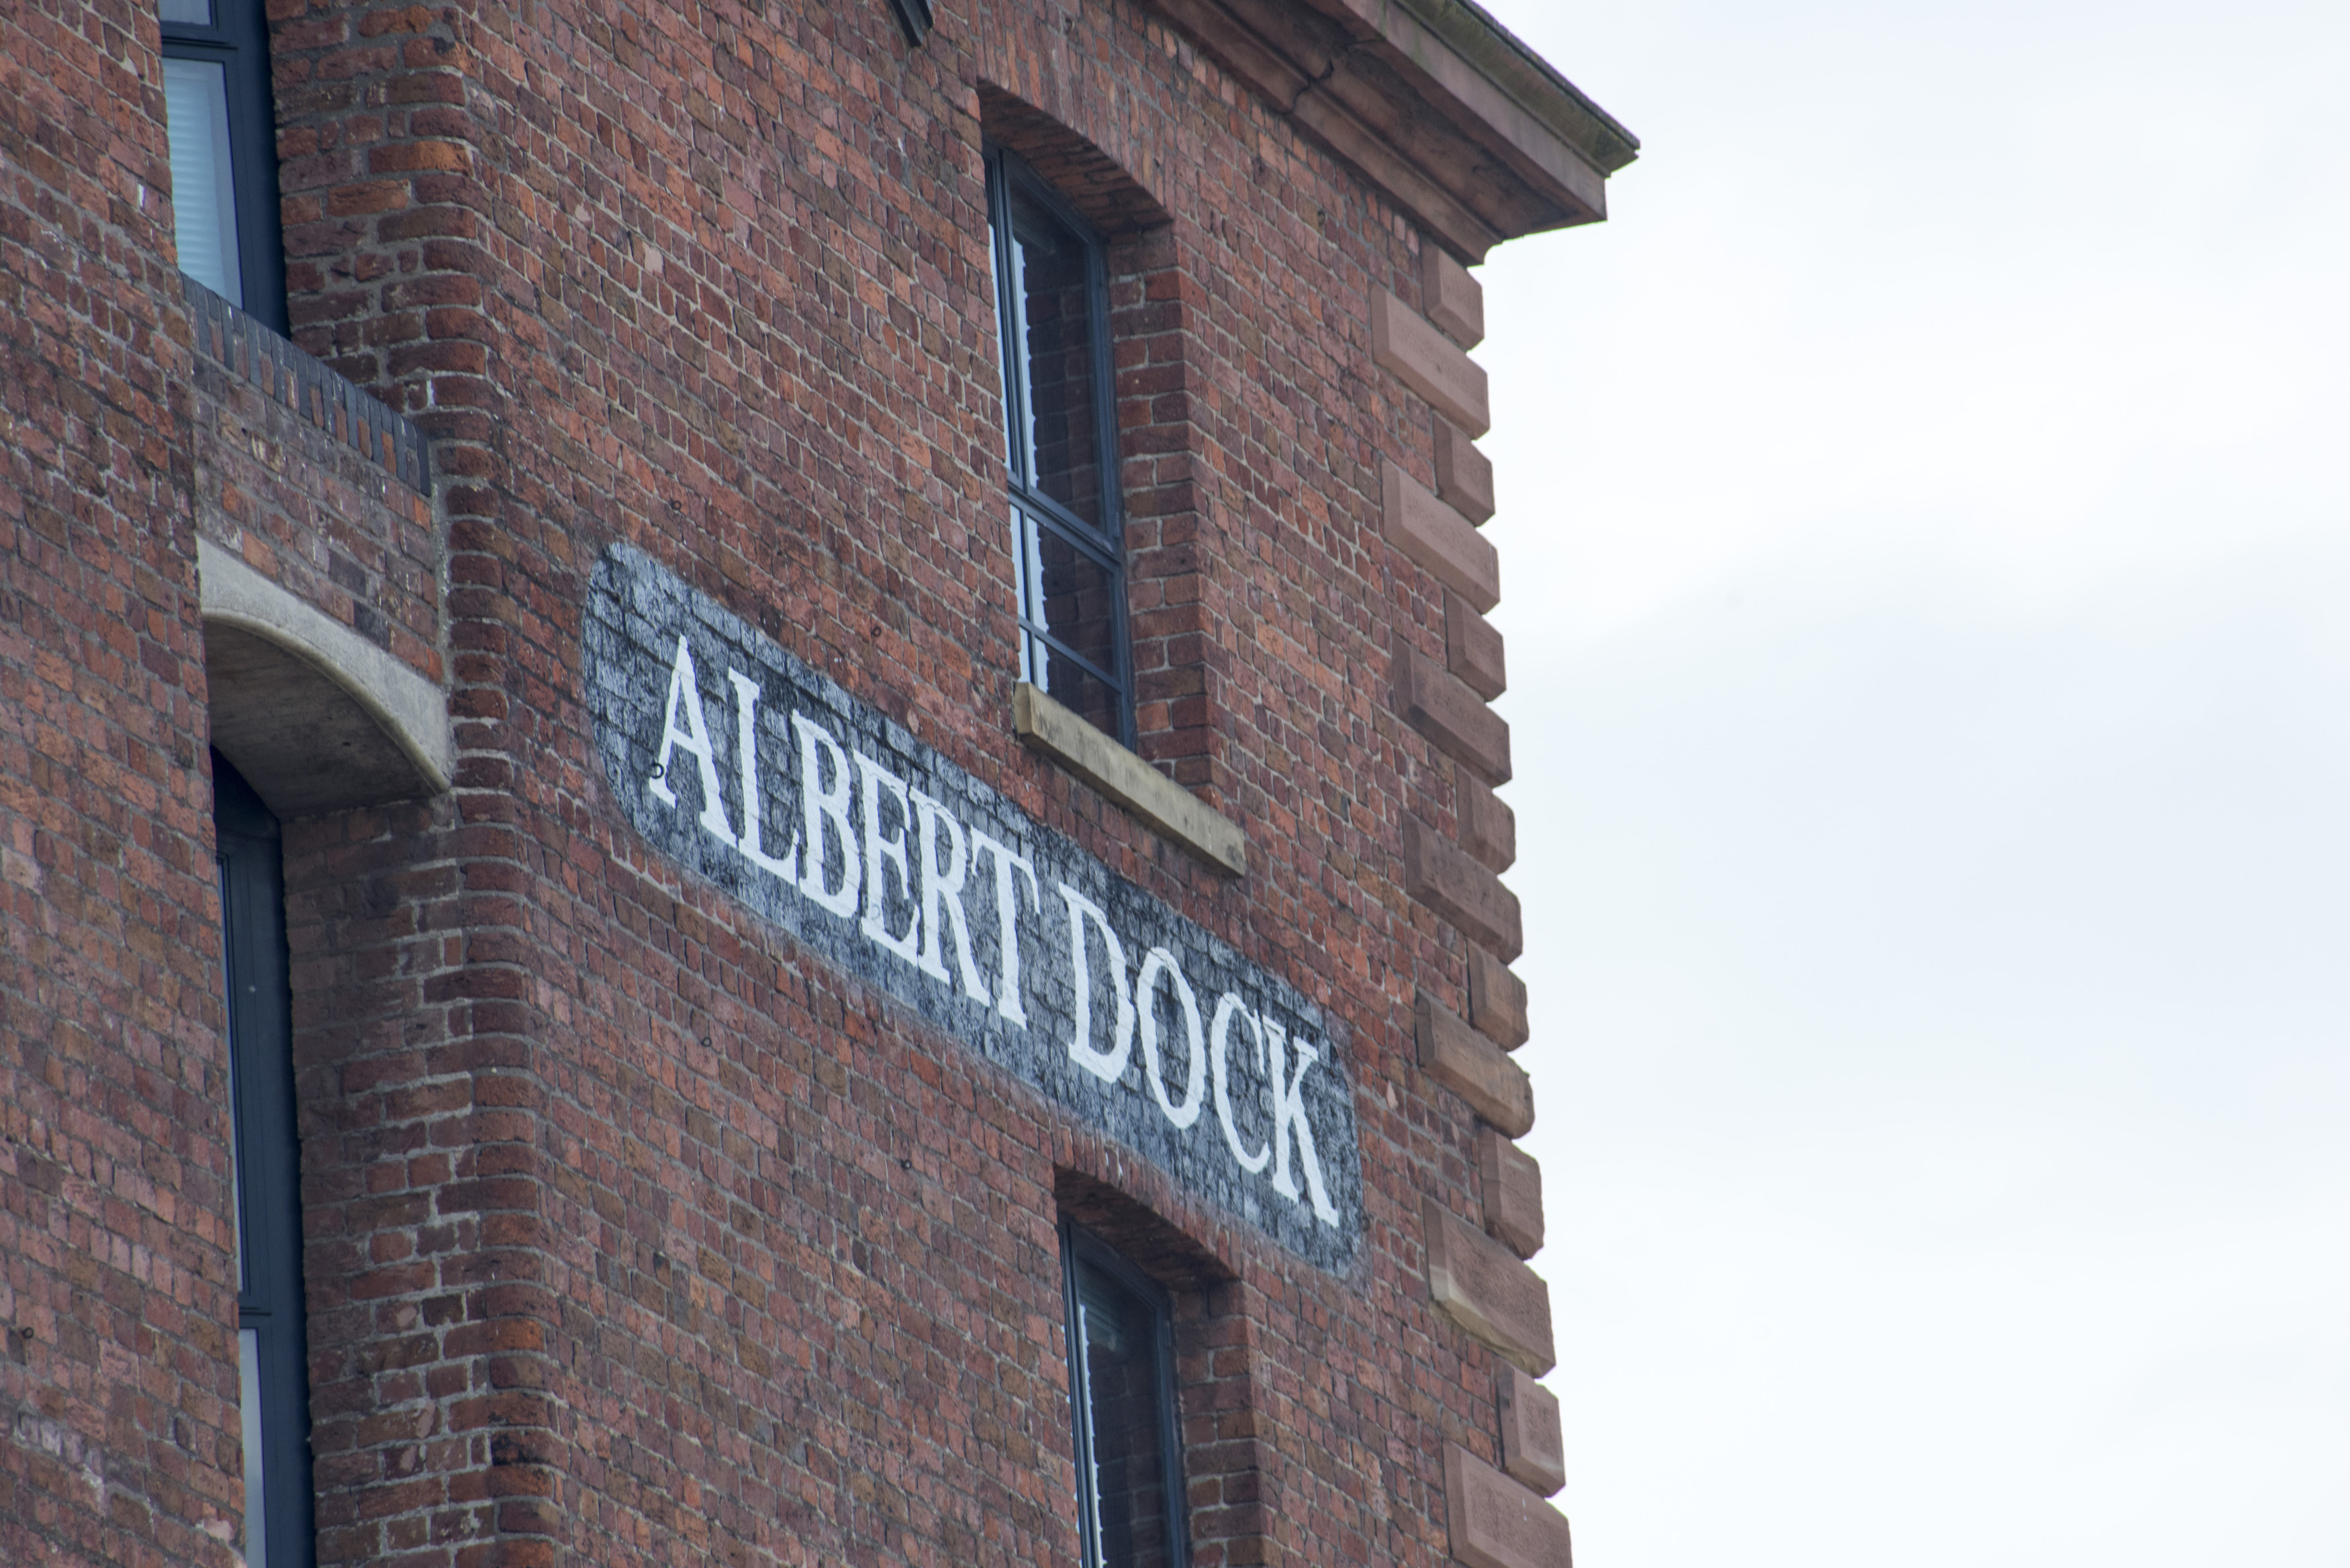 Detail on Albert Dock painted brick sign in between windows in Liverpool with over cast sky